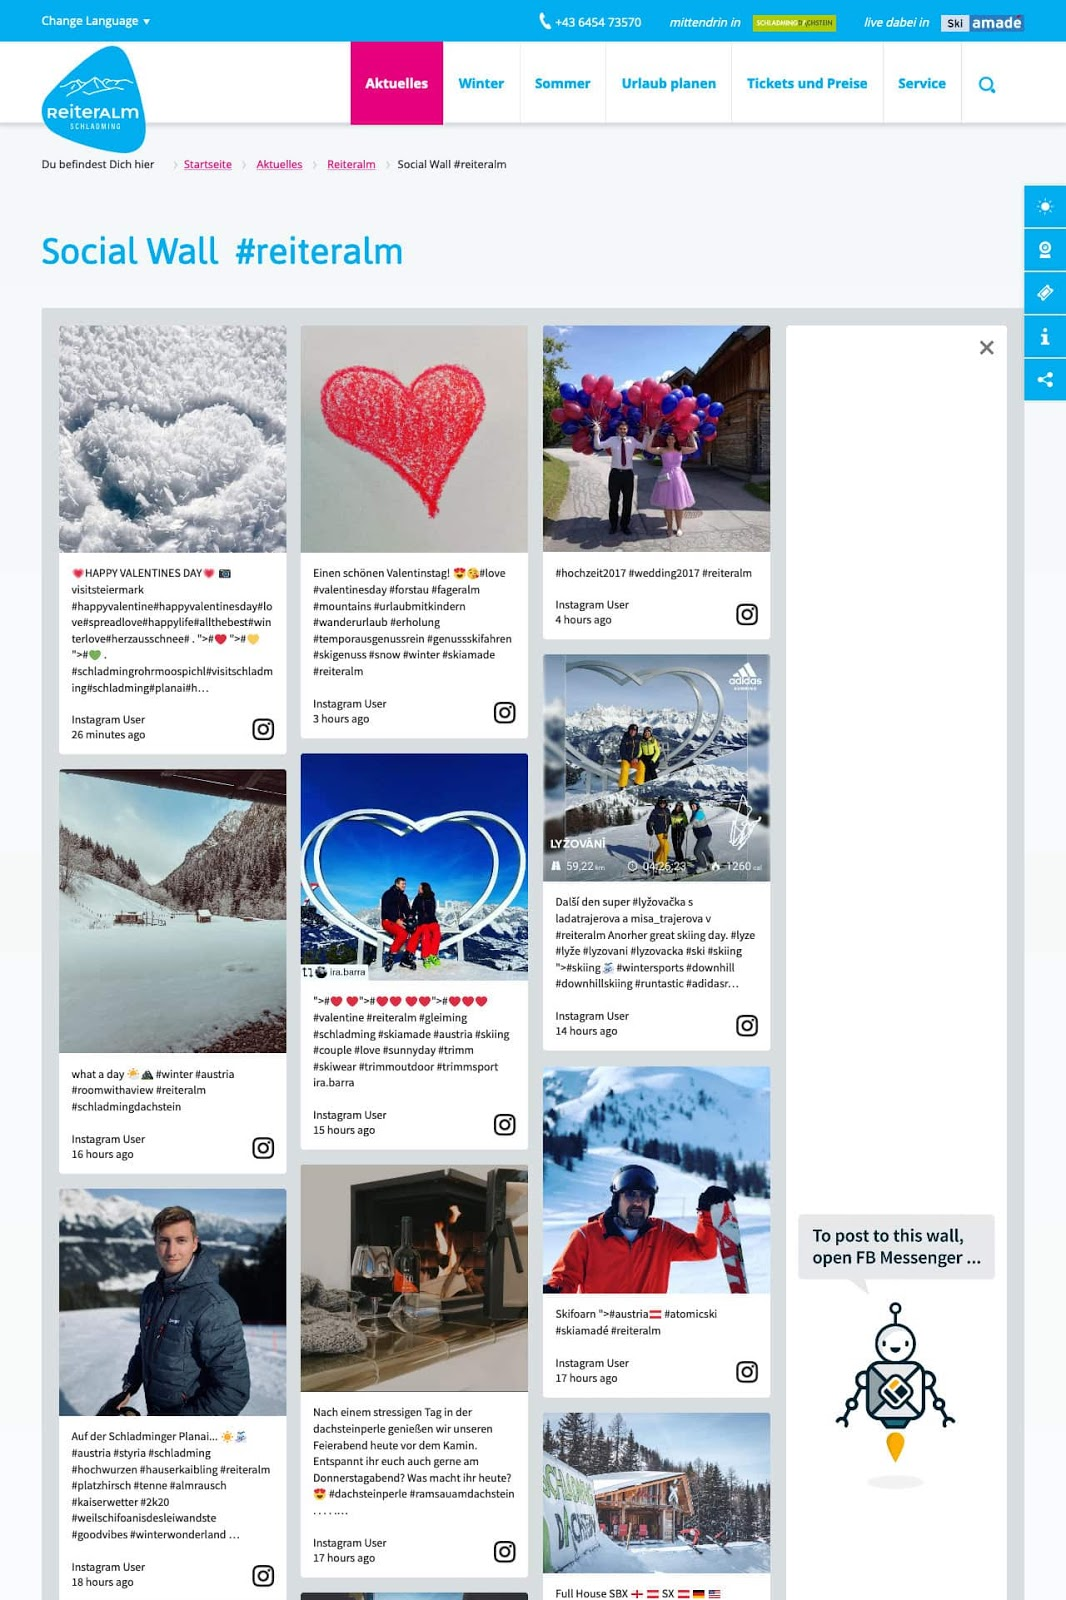 Screenshot of ReiterALM's social media wall. The image shows photos from guests skiing, doing outdoor and indoor activities.